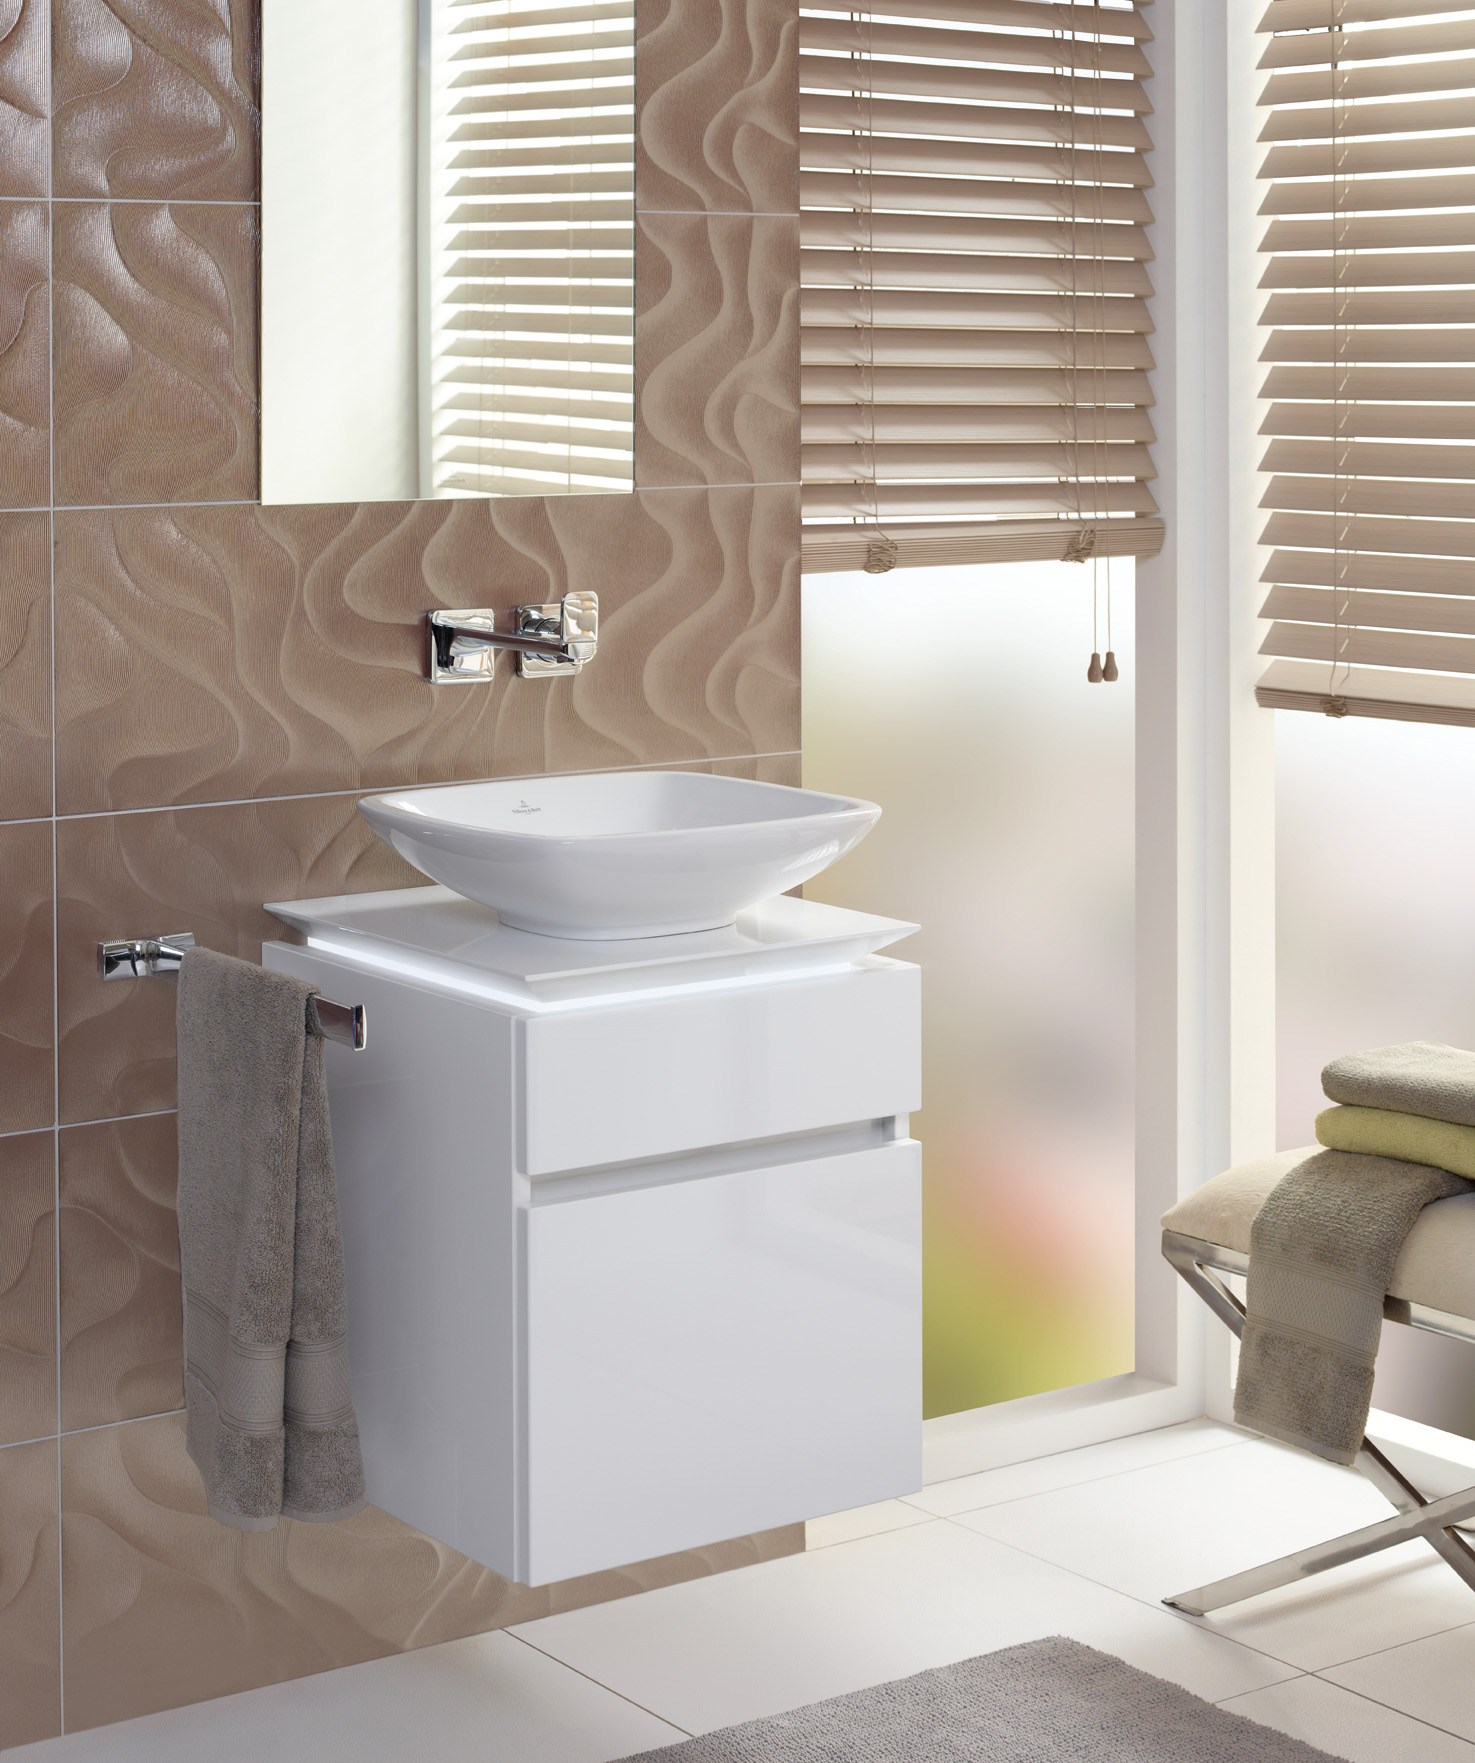 legato vanity unit by villeroy boch - Villeroy And Boch Bathroom Cabinets